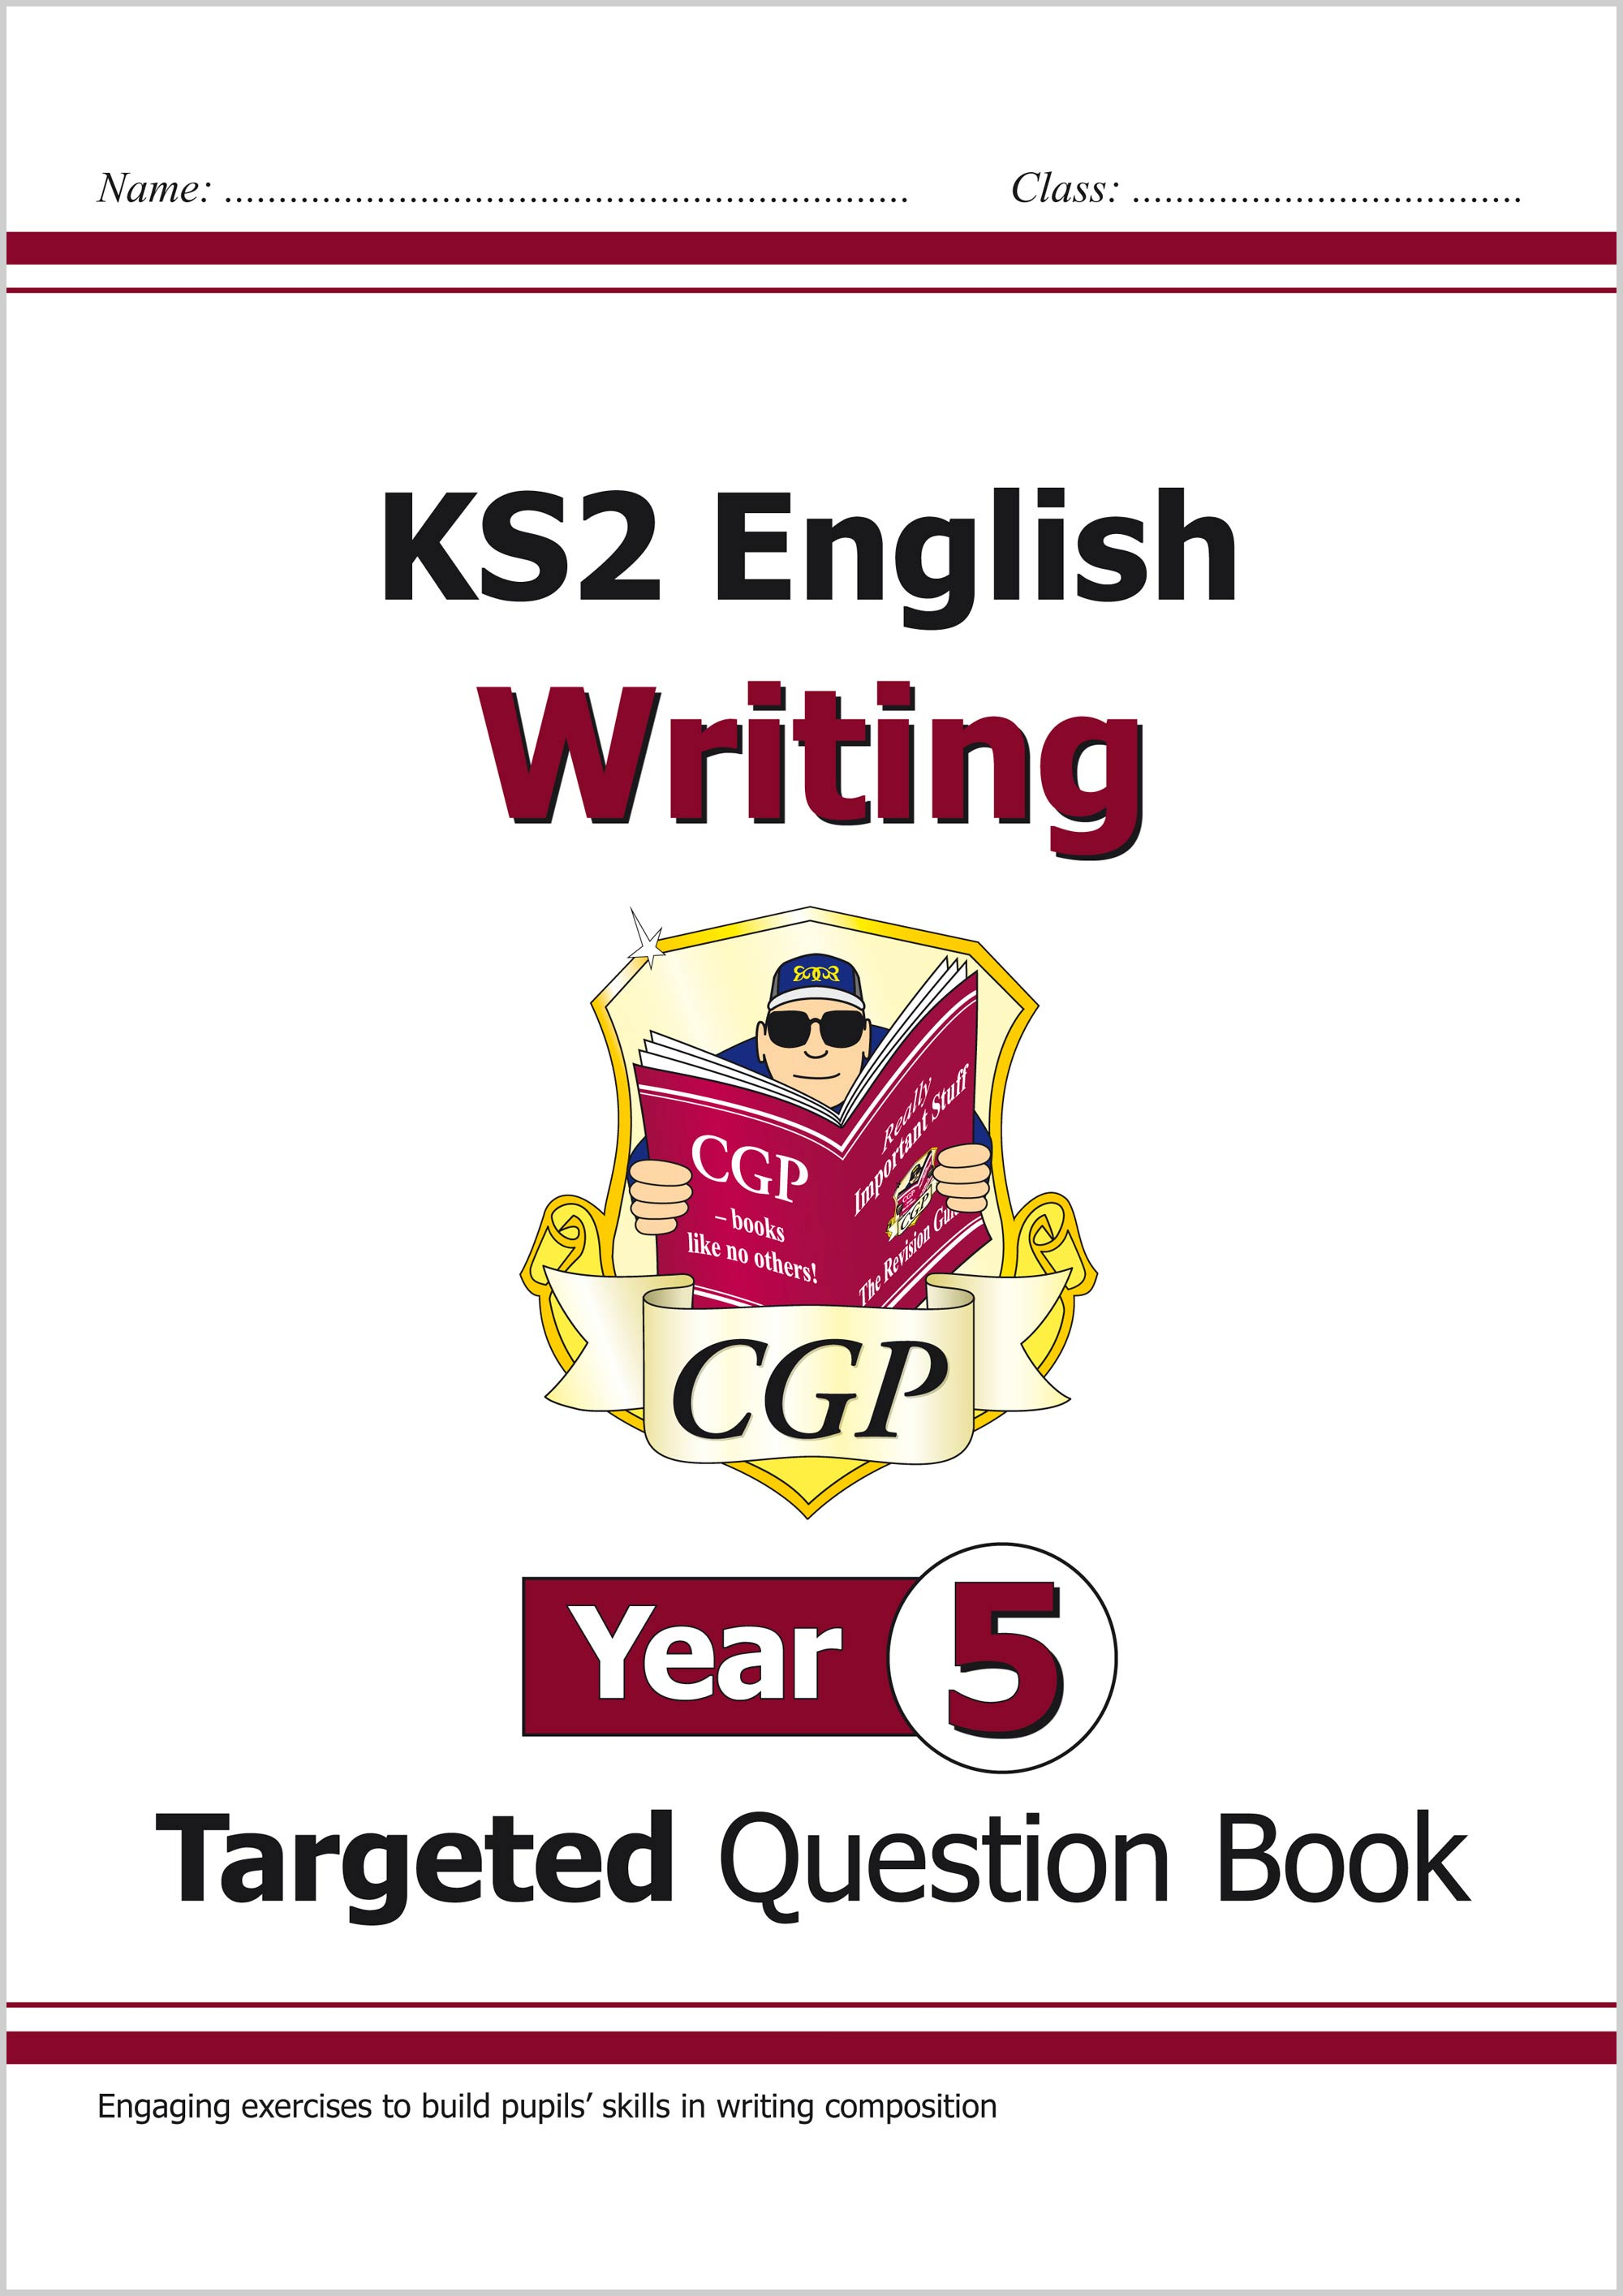 E5WW21 - New KS2 English Writing Targeted Question Book - Year 5